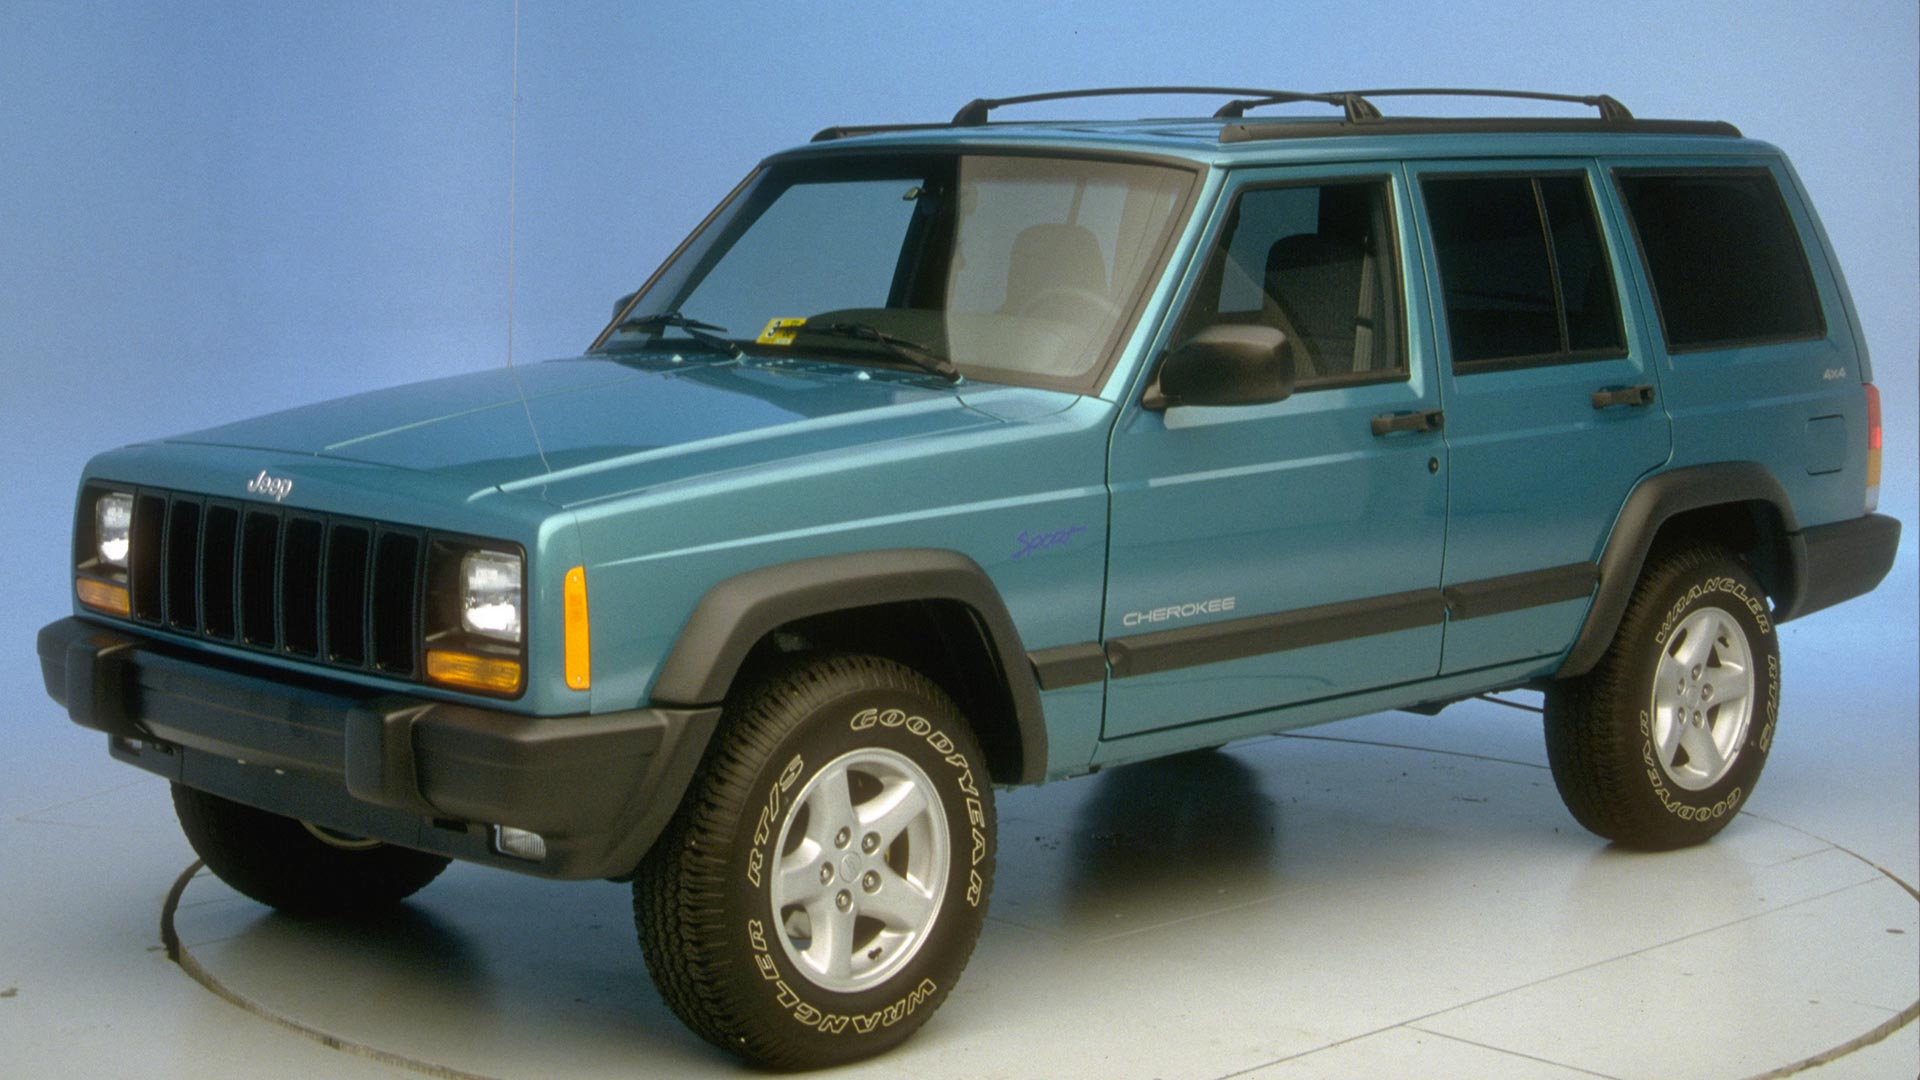 1999 Jeep Cherokee 4-door SUV